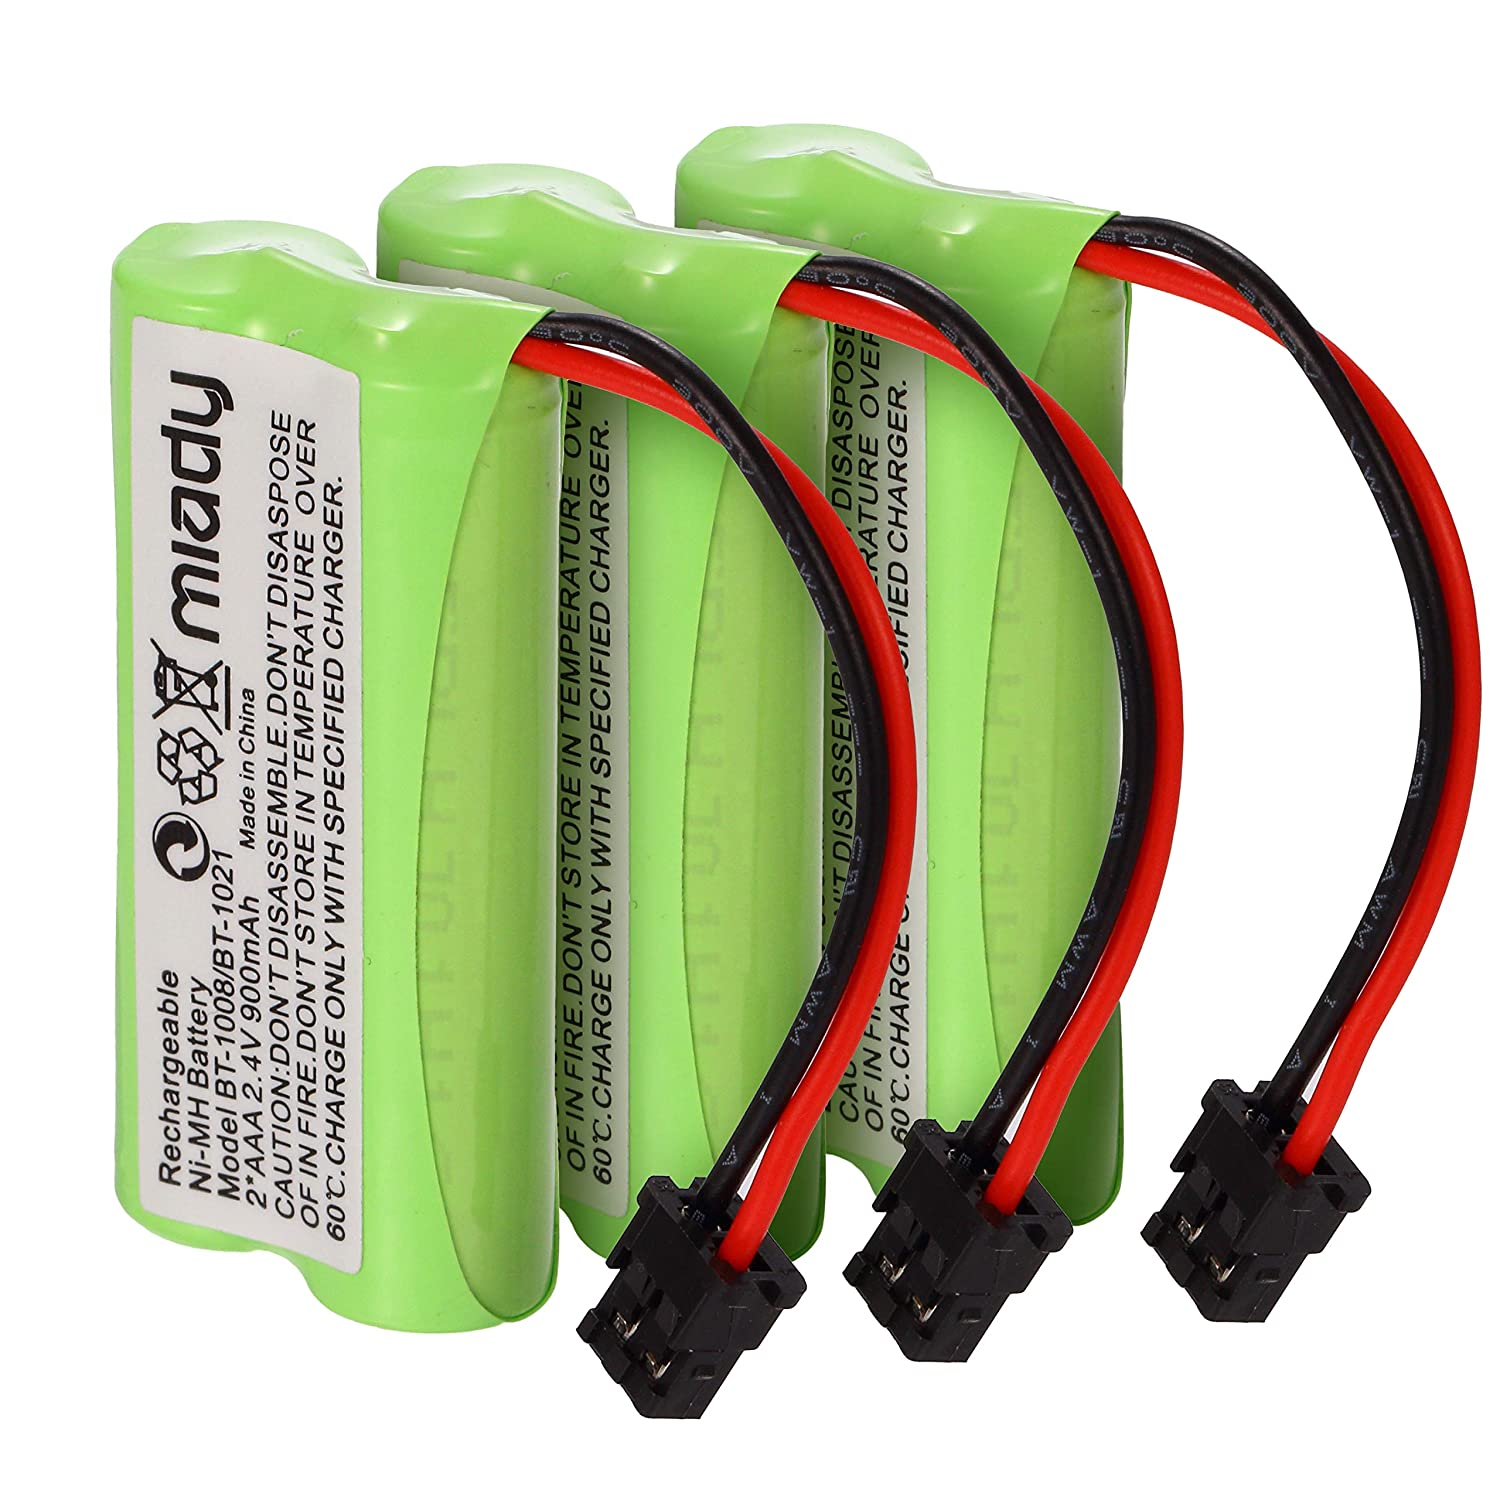 Miady 2.4V 2 AAA 900mAh Ni-MH Cordless Home Phone Battery for Uniden BT1008 BT-1008 BT1016 BT-1016 BT1021 BT-1021 WITH43-269 WX12077 Sanyo CAS-D6325 CASD6325 Lenmar CBBT1008 CB-BT1008 (Pack of 3)